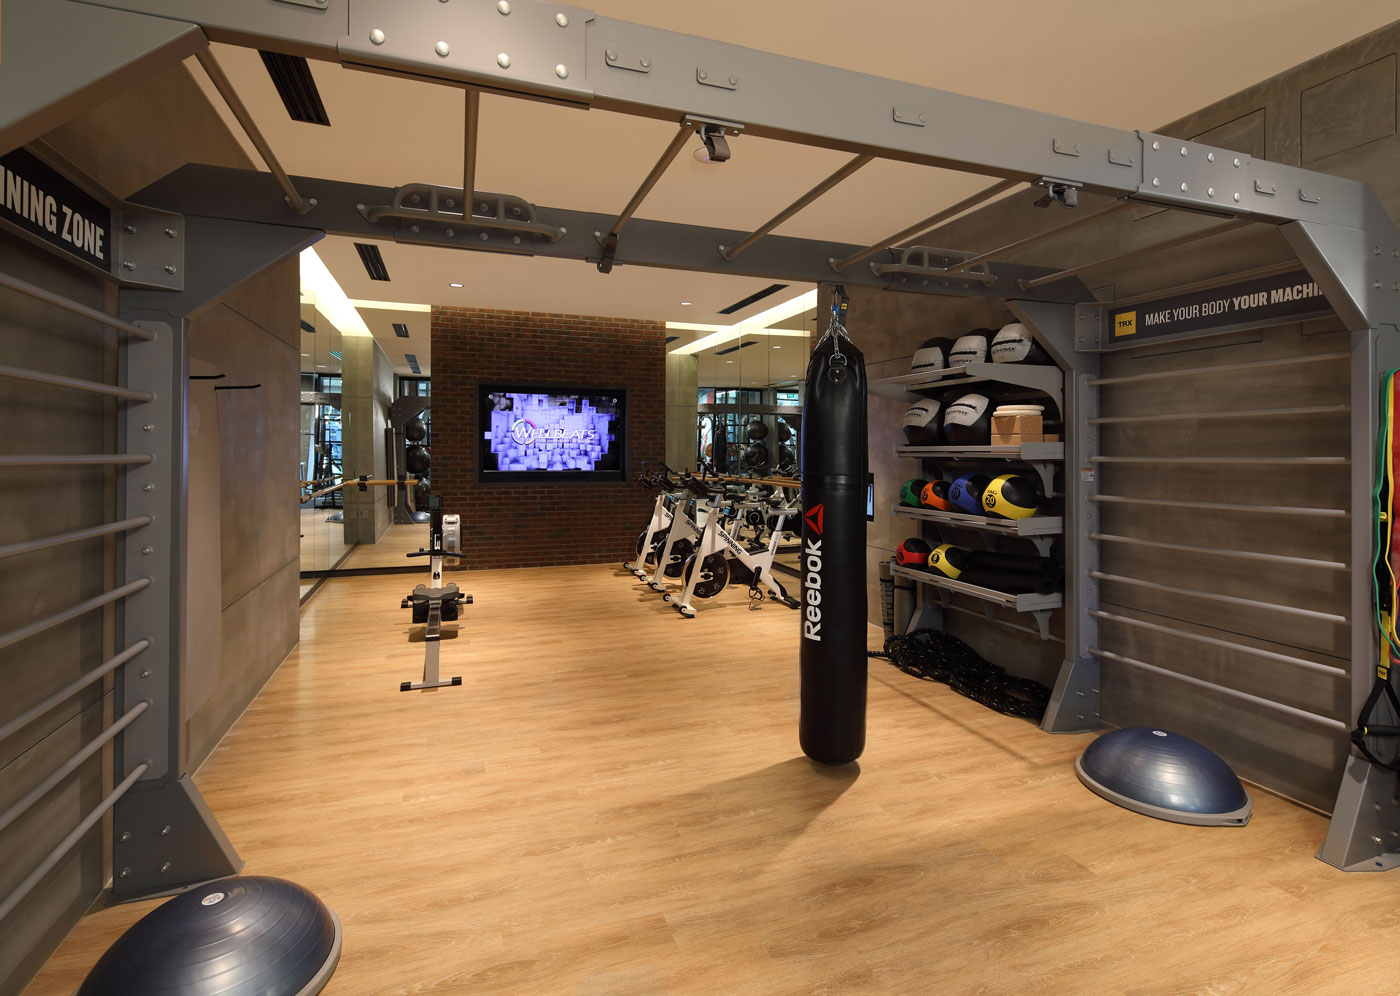 State-of-the-art fitness center featuring a punching bag, a rowing machine, free weight and stationary bikes.